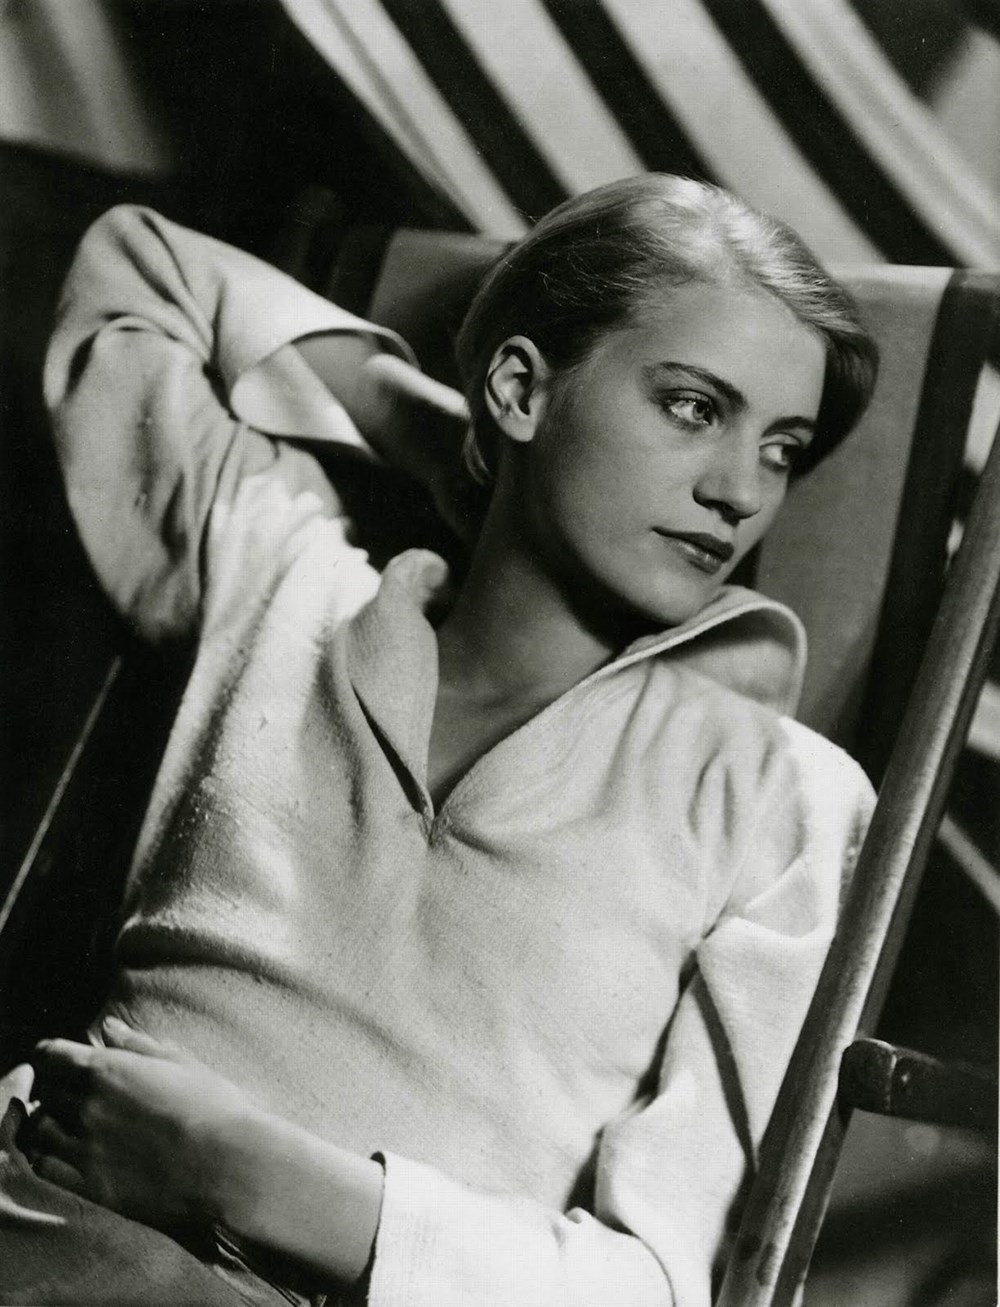 Lee Miller Portraits From Life